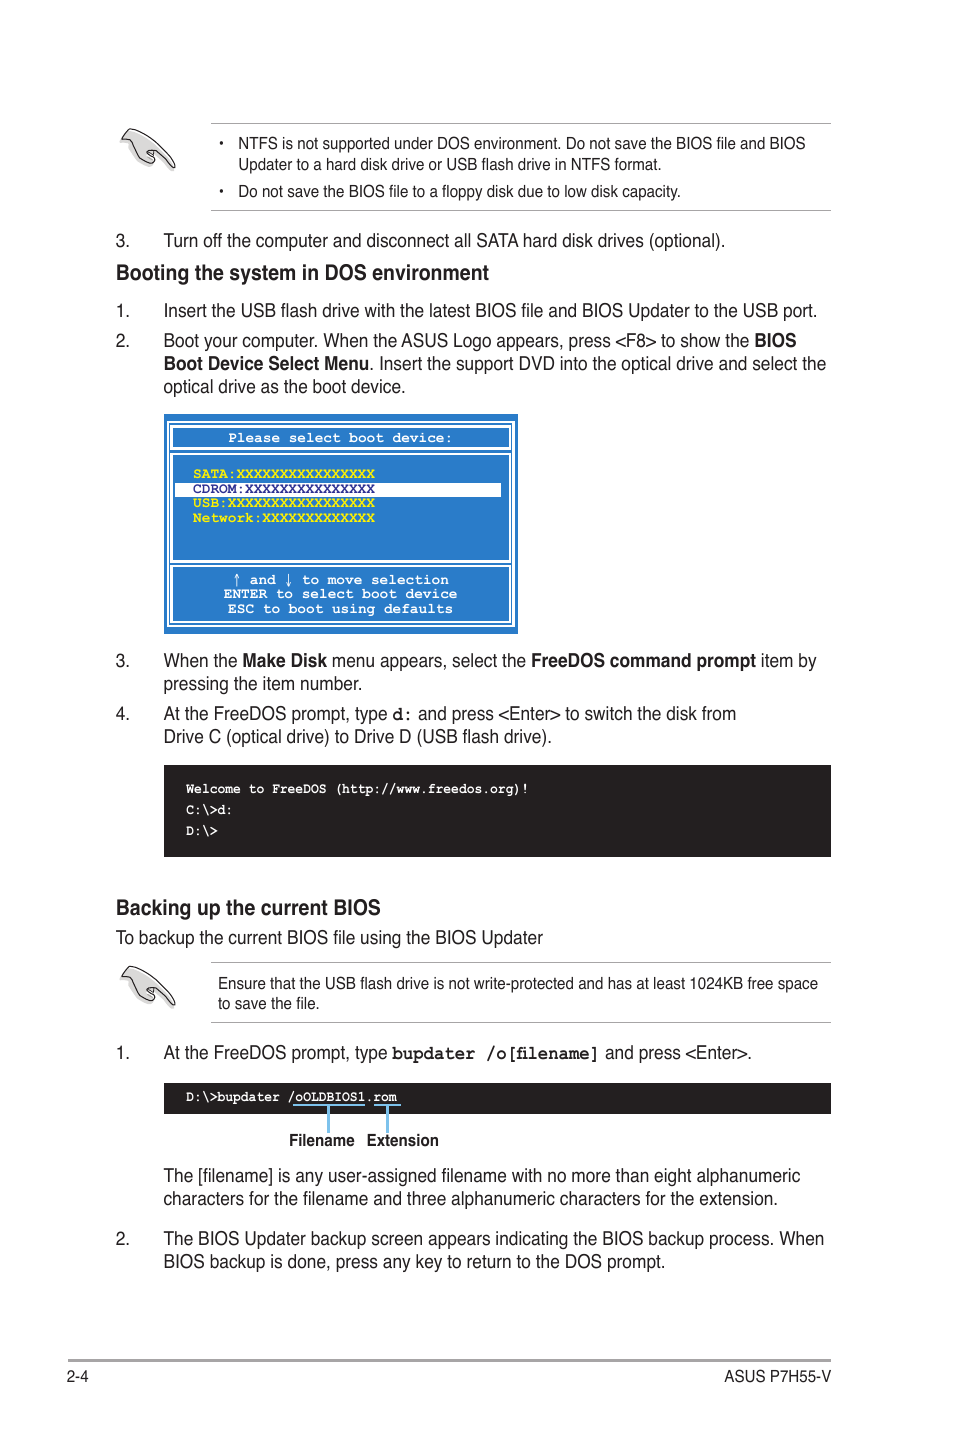 Booting the system in dos environment, Backing up the